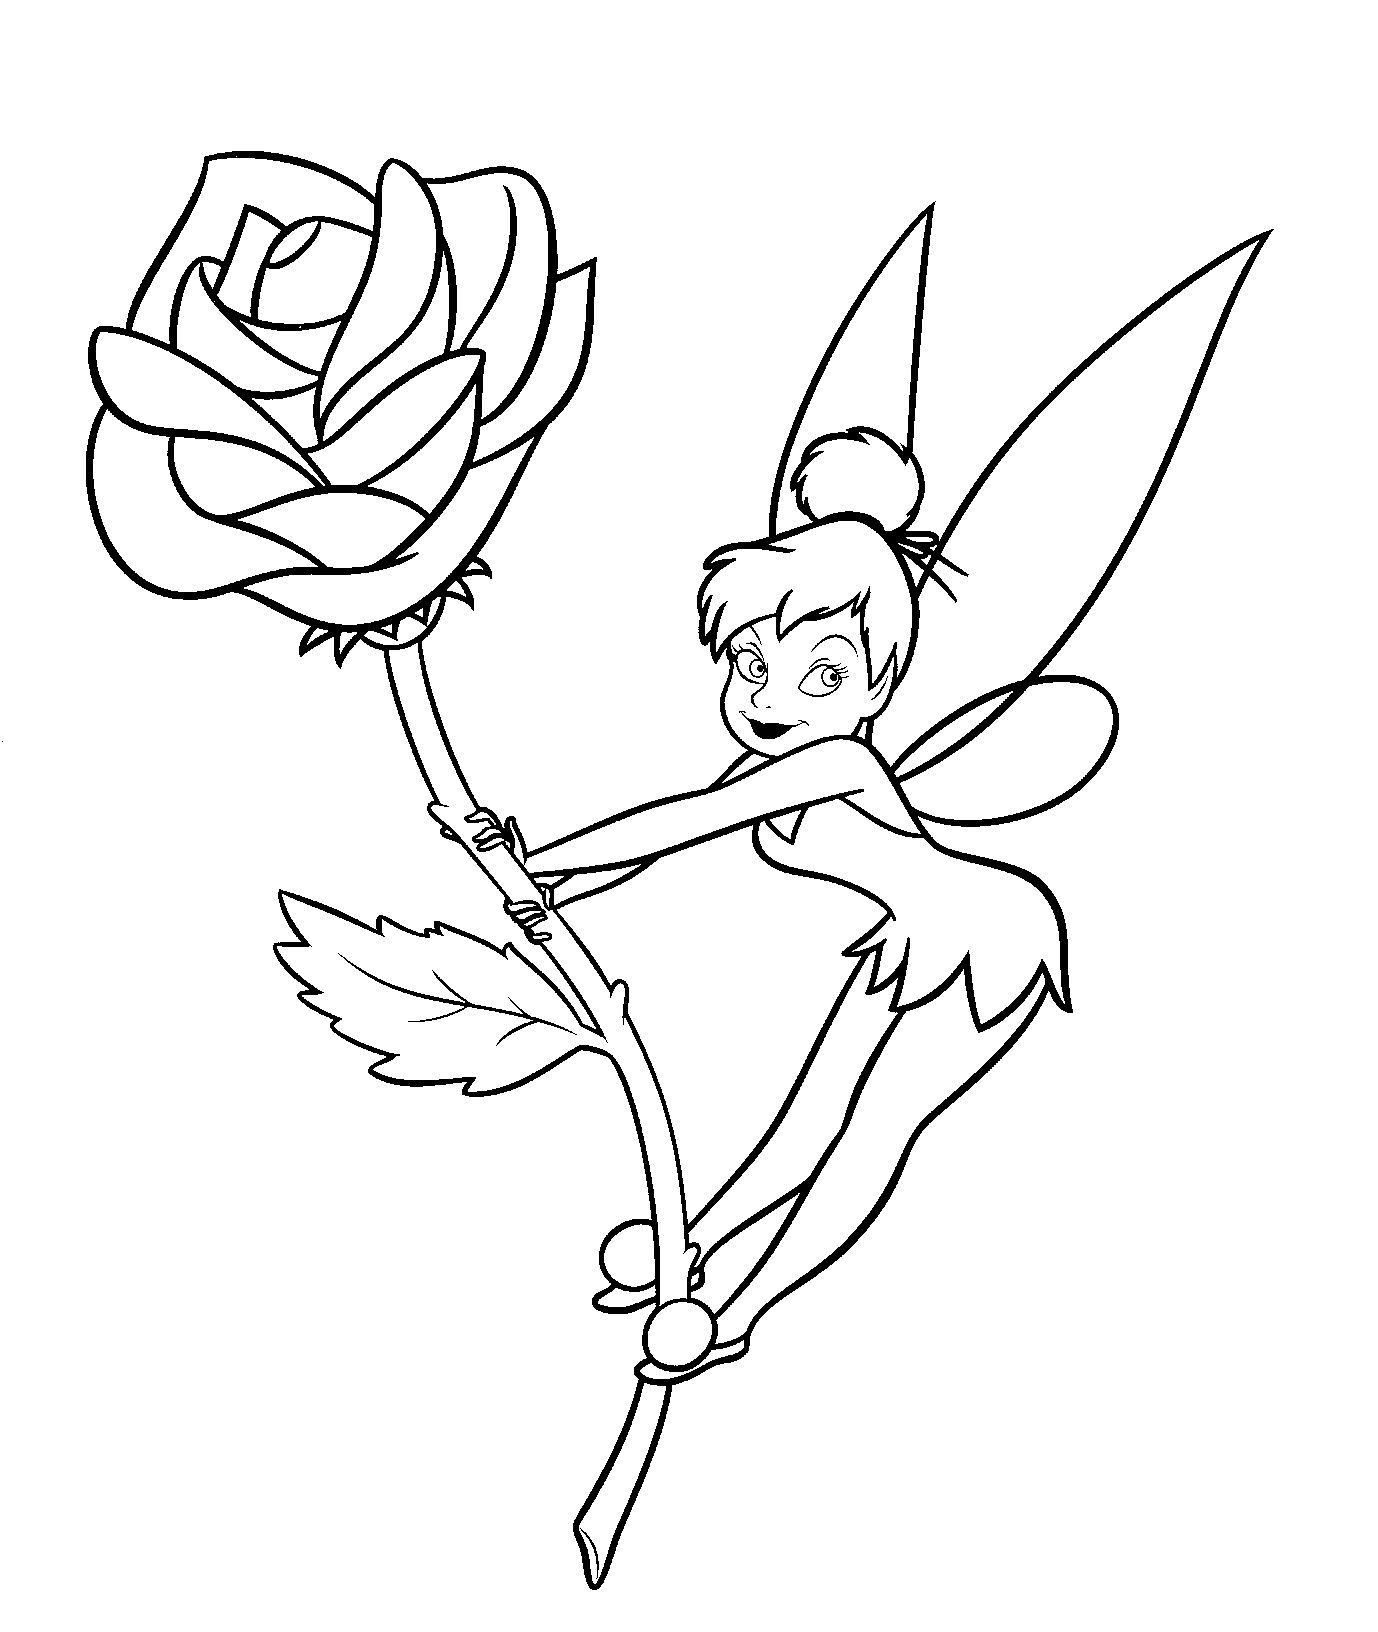 tinkerbell pictures to color 60 tinkerbell birthday party ideas tinkerbell coloring color pictures tinkerbell to